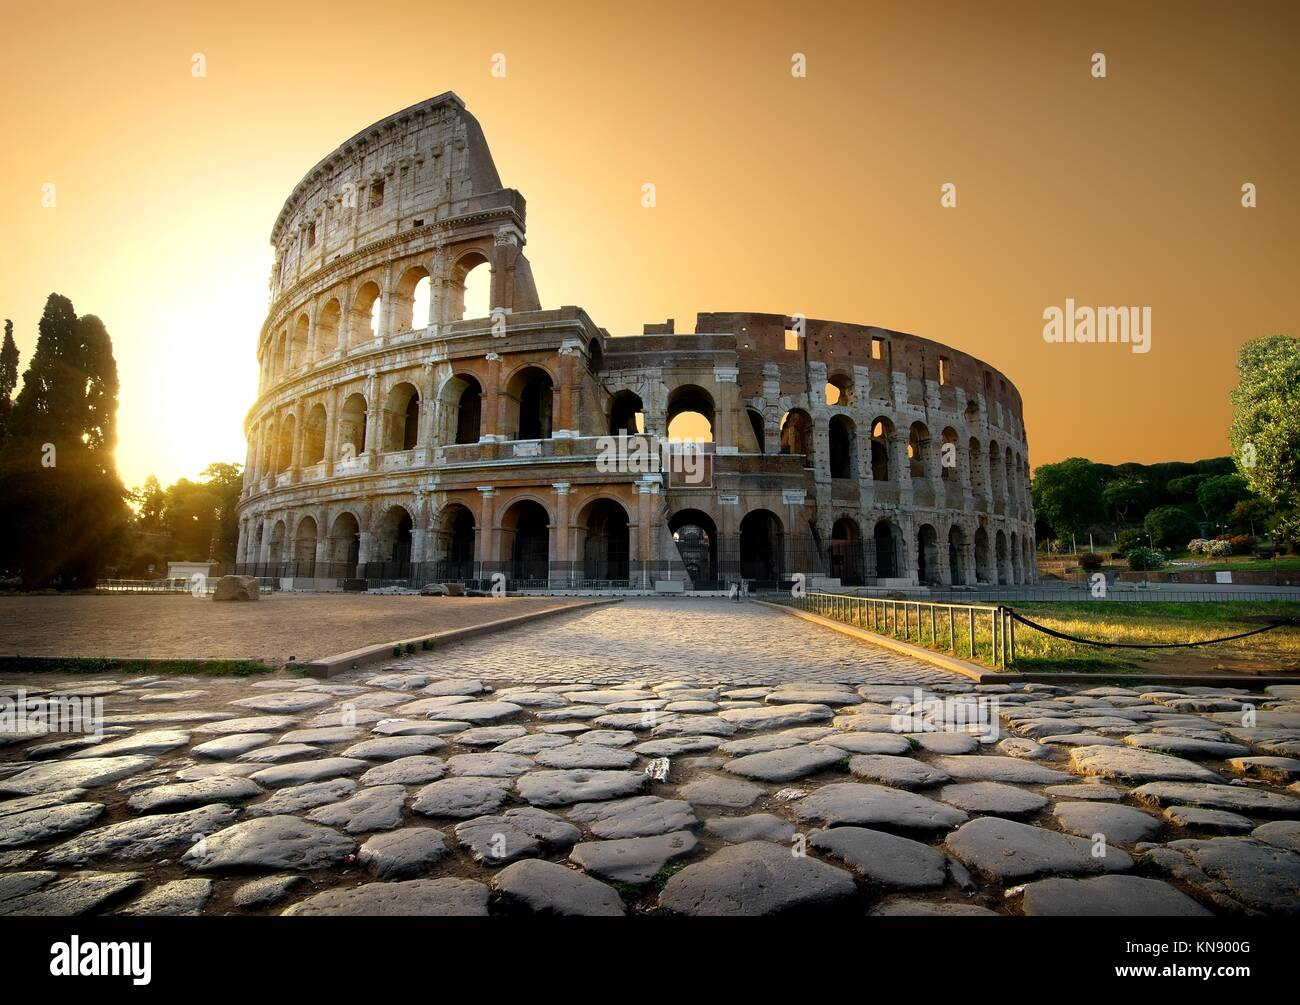 Colosseum and yellow sky in Rome, Italy. - Stock Image